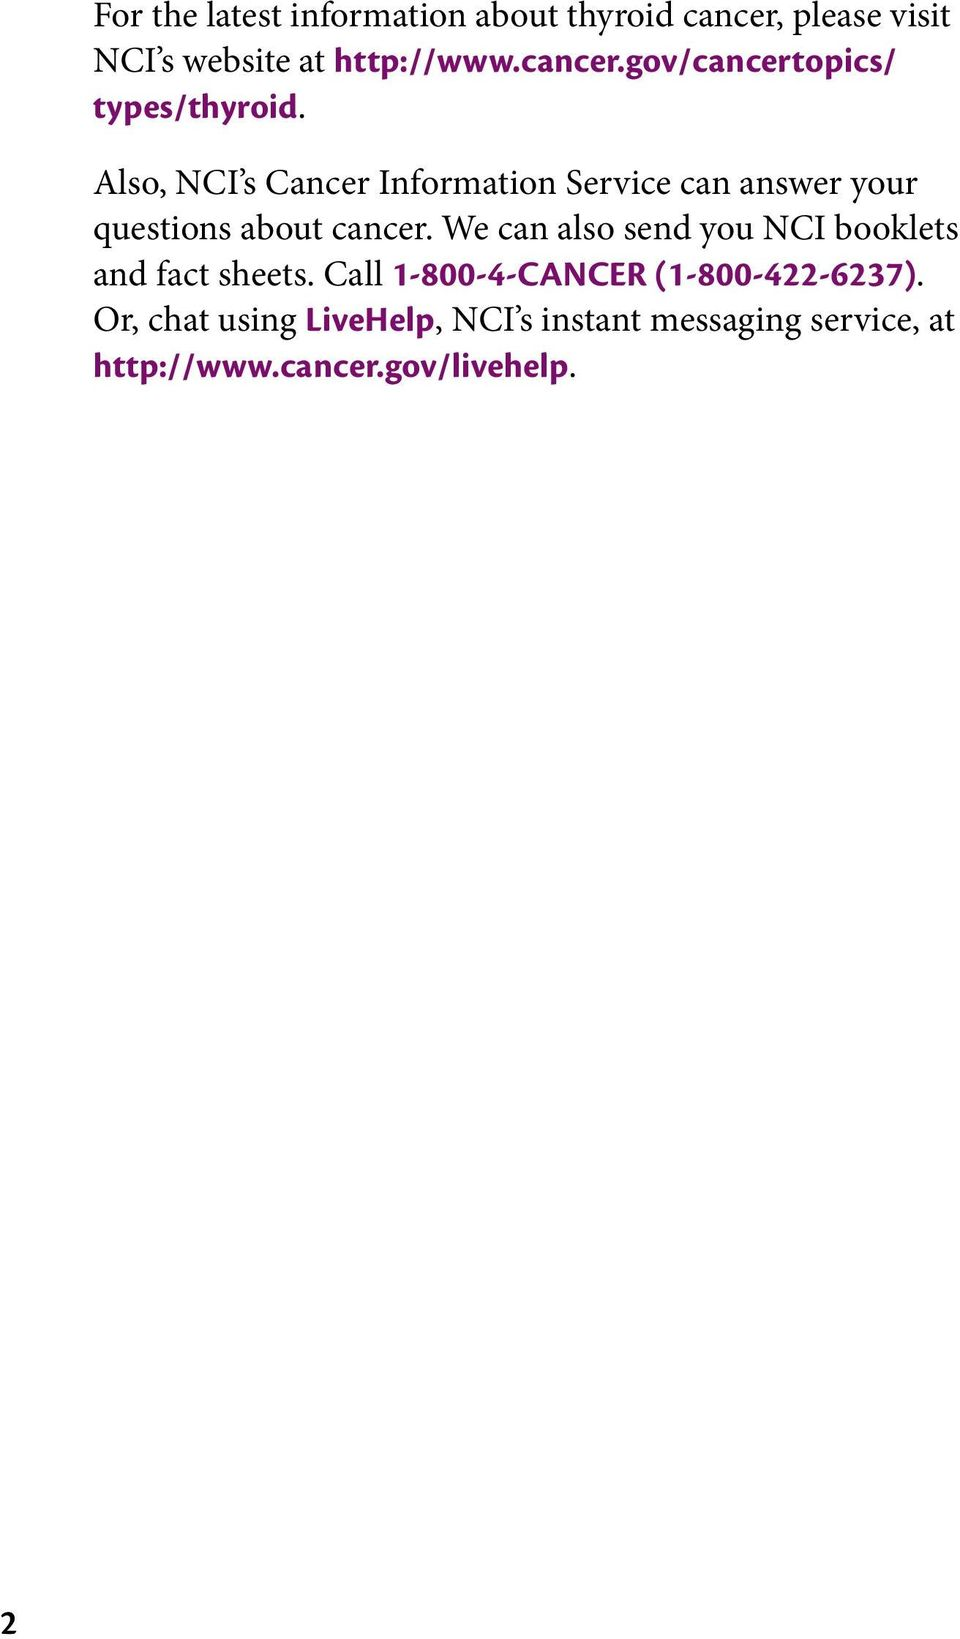 We can also send you NCI booklets and fact sheets. Call 1-800-4-CANCER (1-800-422-6237).